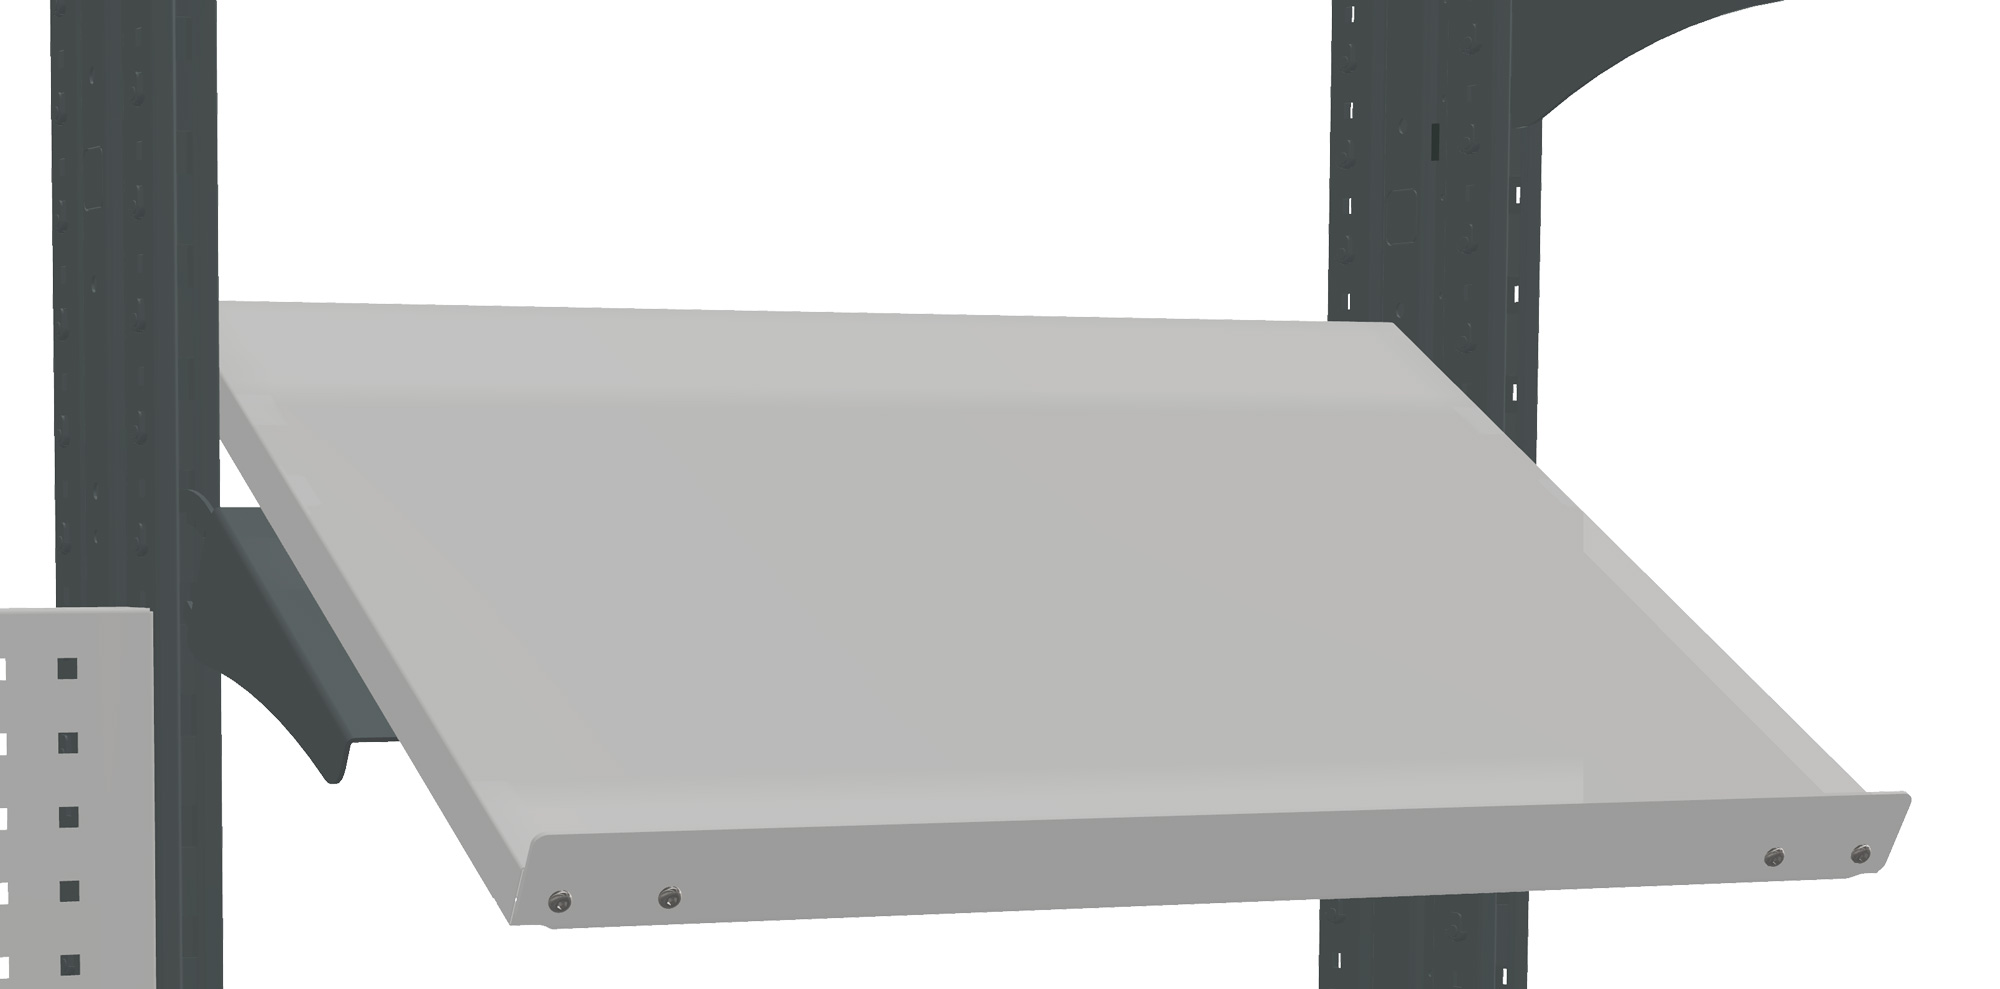 VS Shelf for a panel, 100 ESD